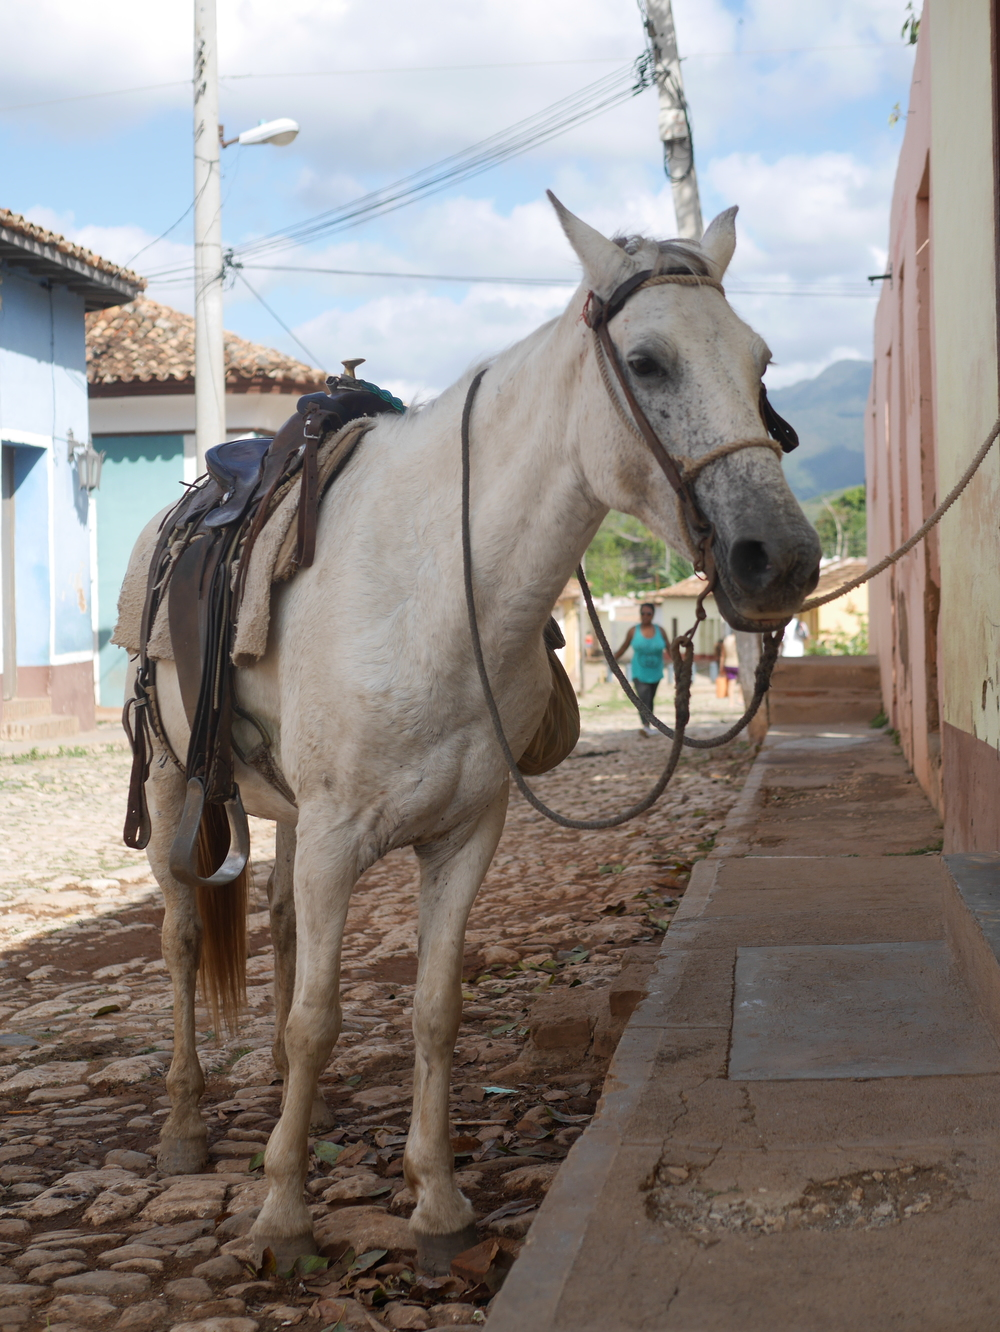 Many people get around by horse and buggy in Trinidad, Cuba. Cars are almost exclusively private and shared taxis.